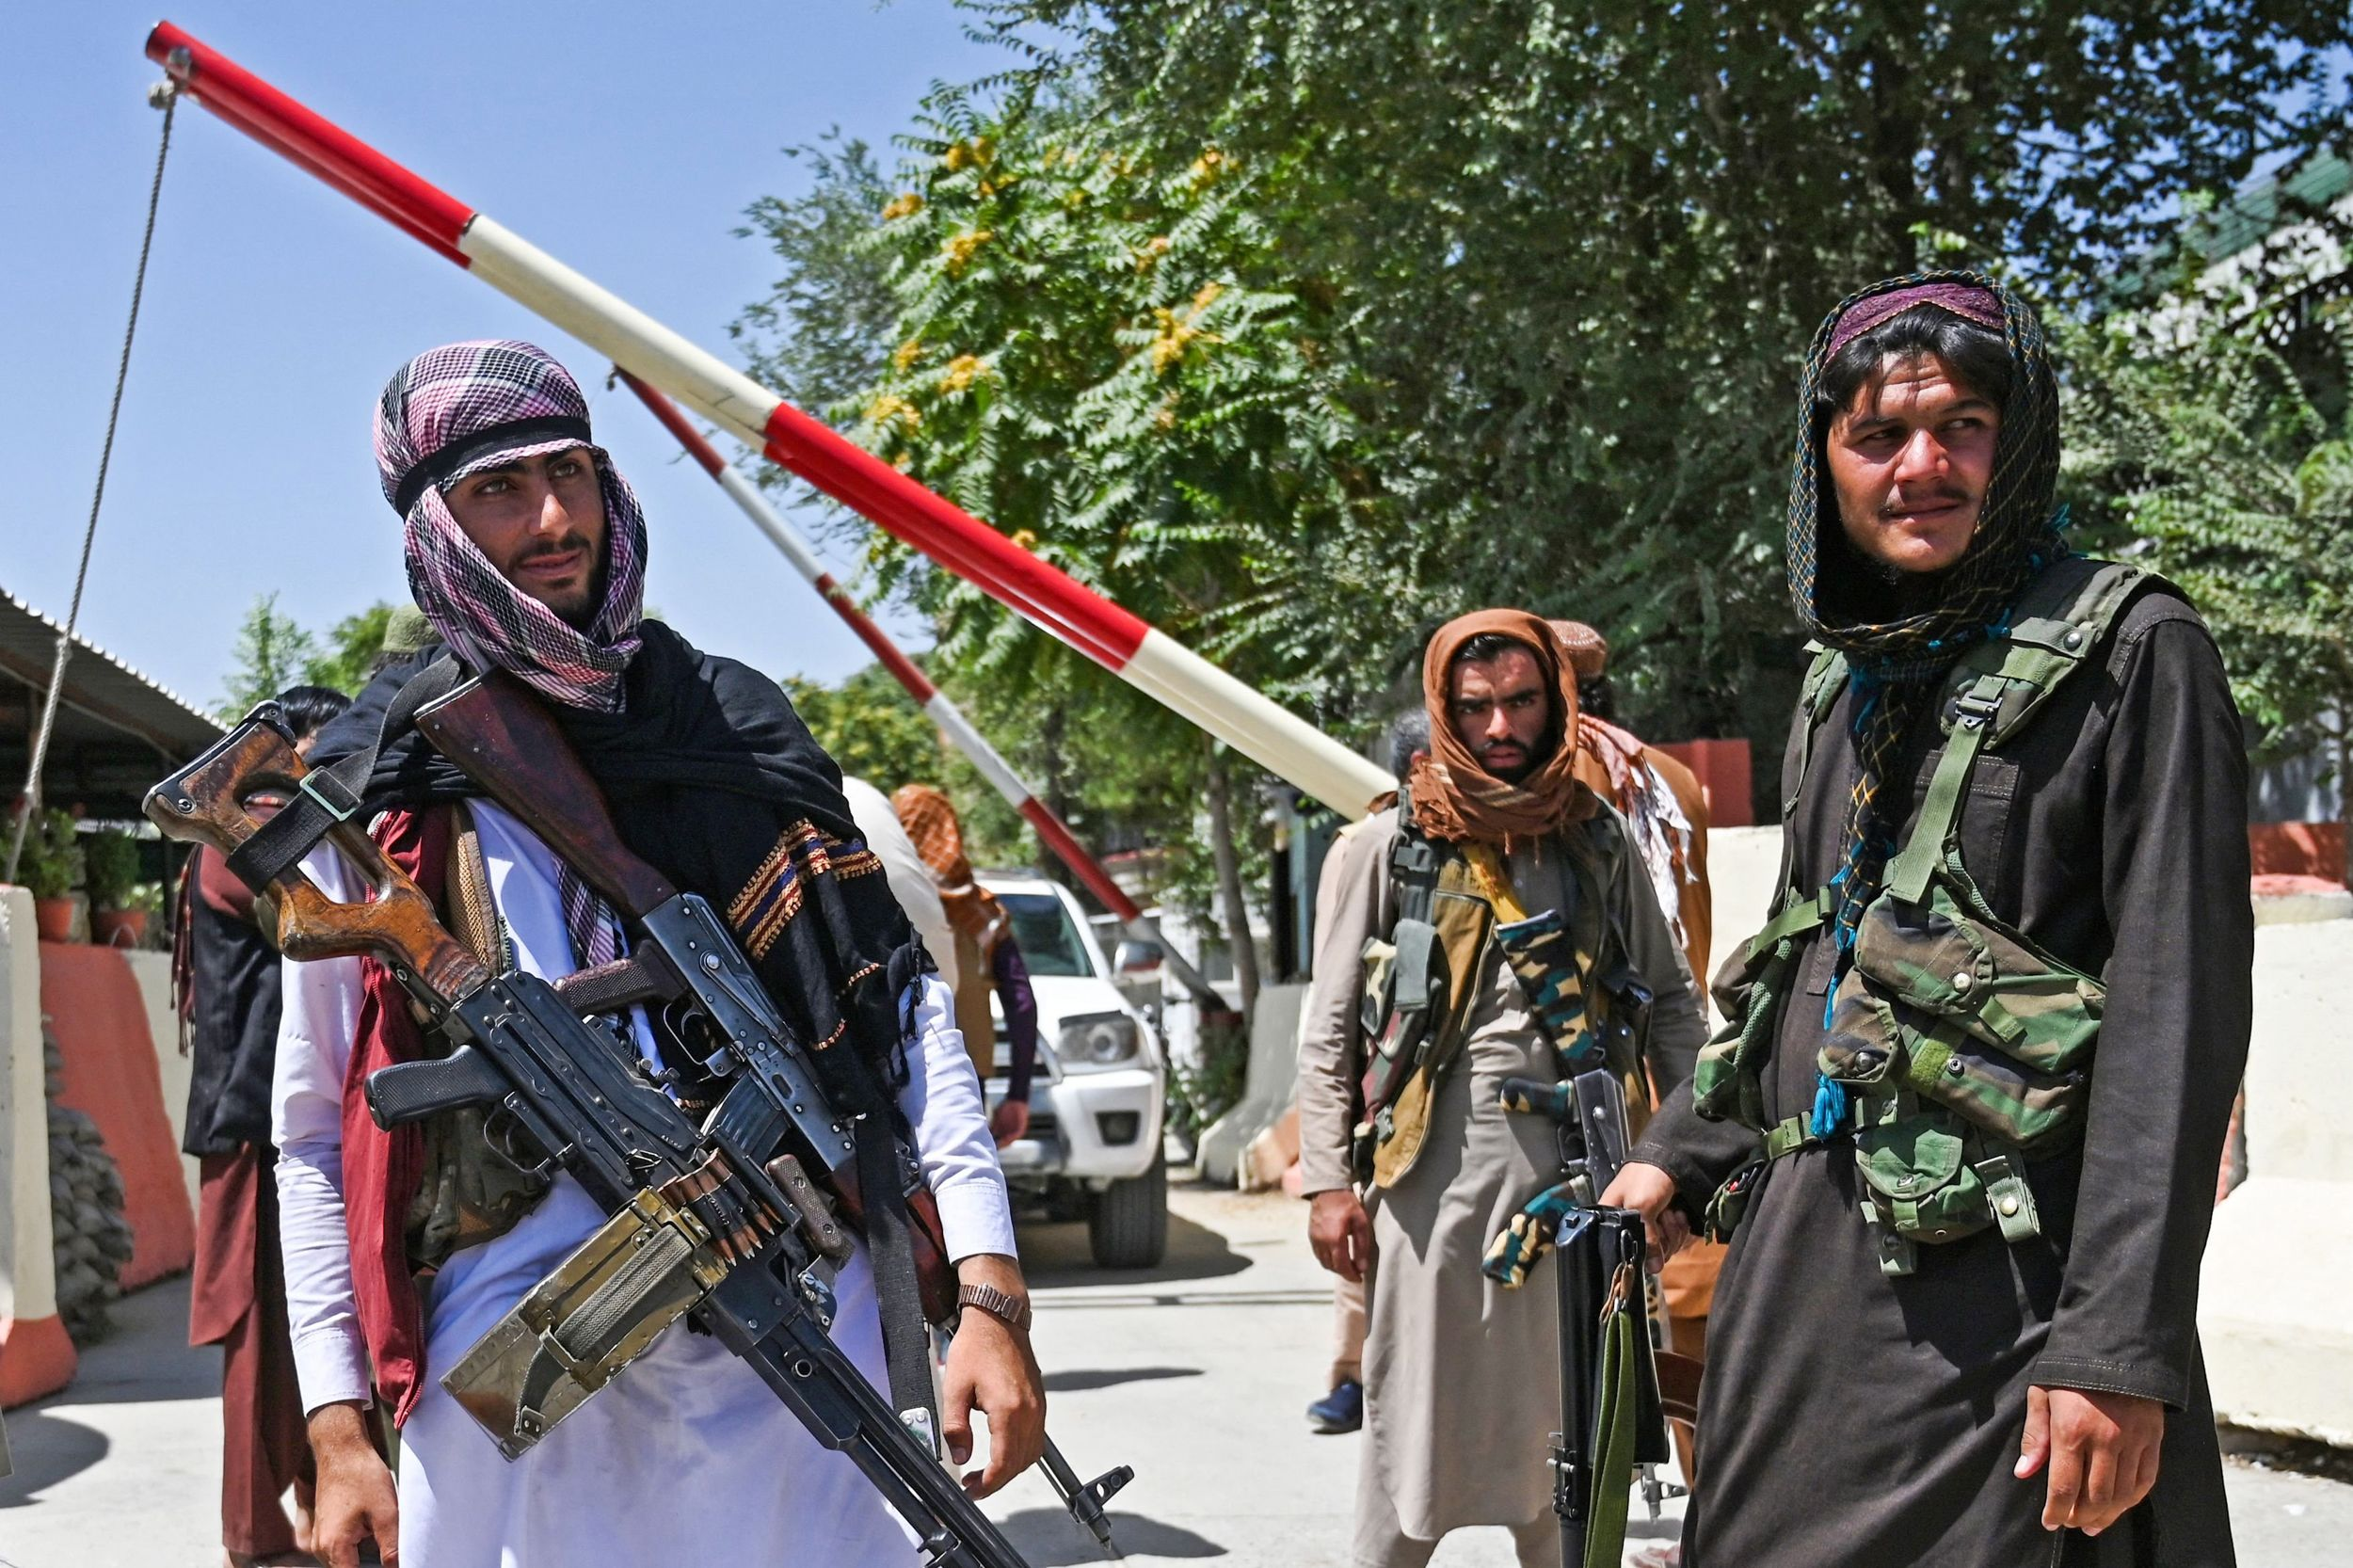 5 days: The key dates that led to a Taliban takeover in Afghanistan